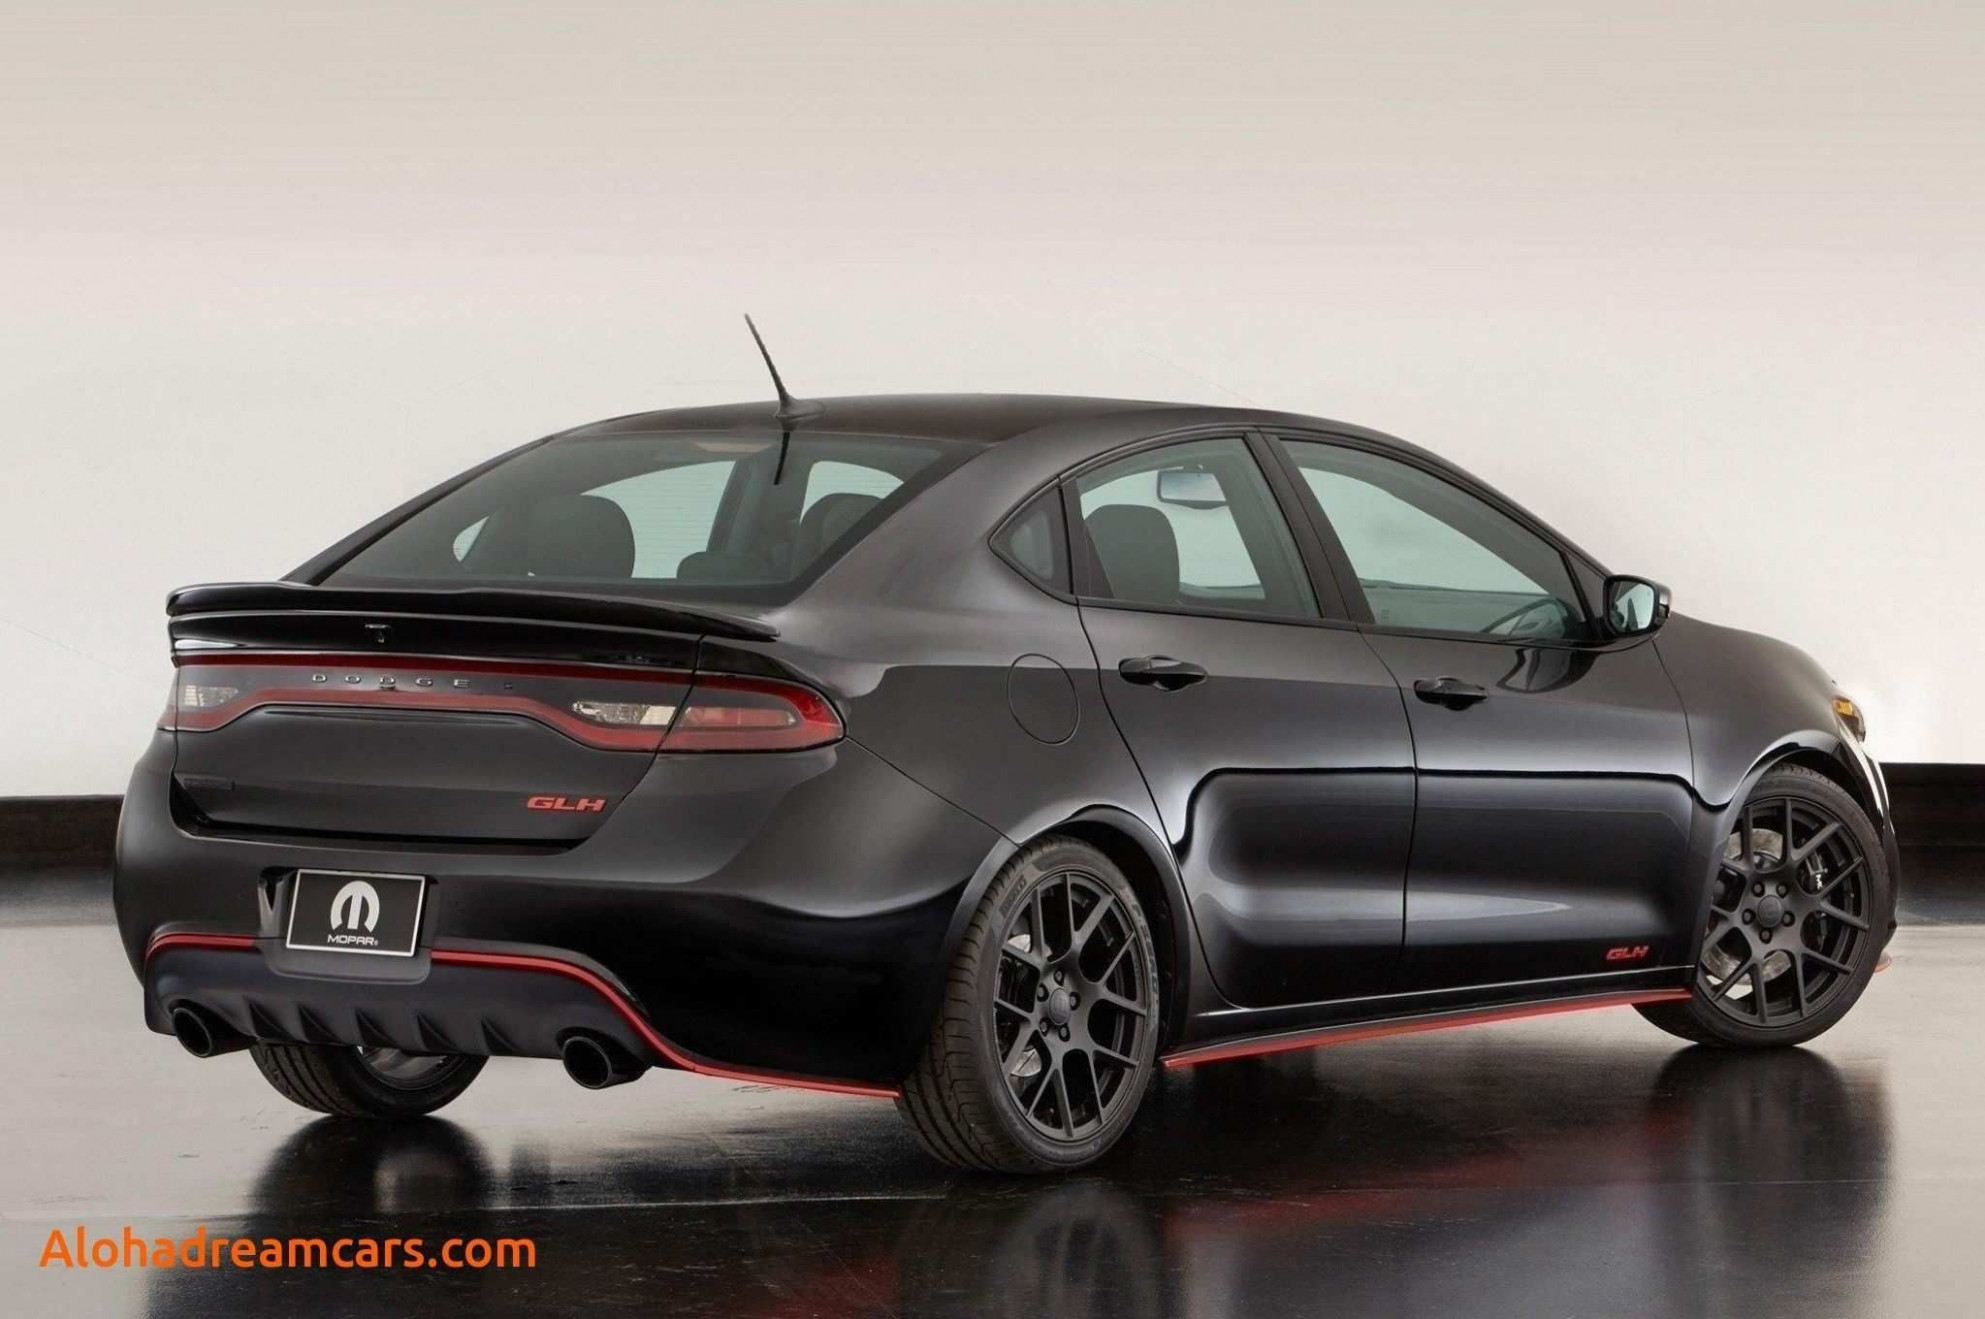 7 dodge neon specs First Drive, Price, Performance and Review ..